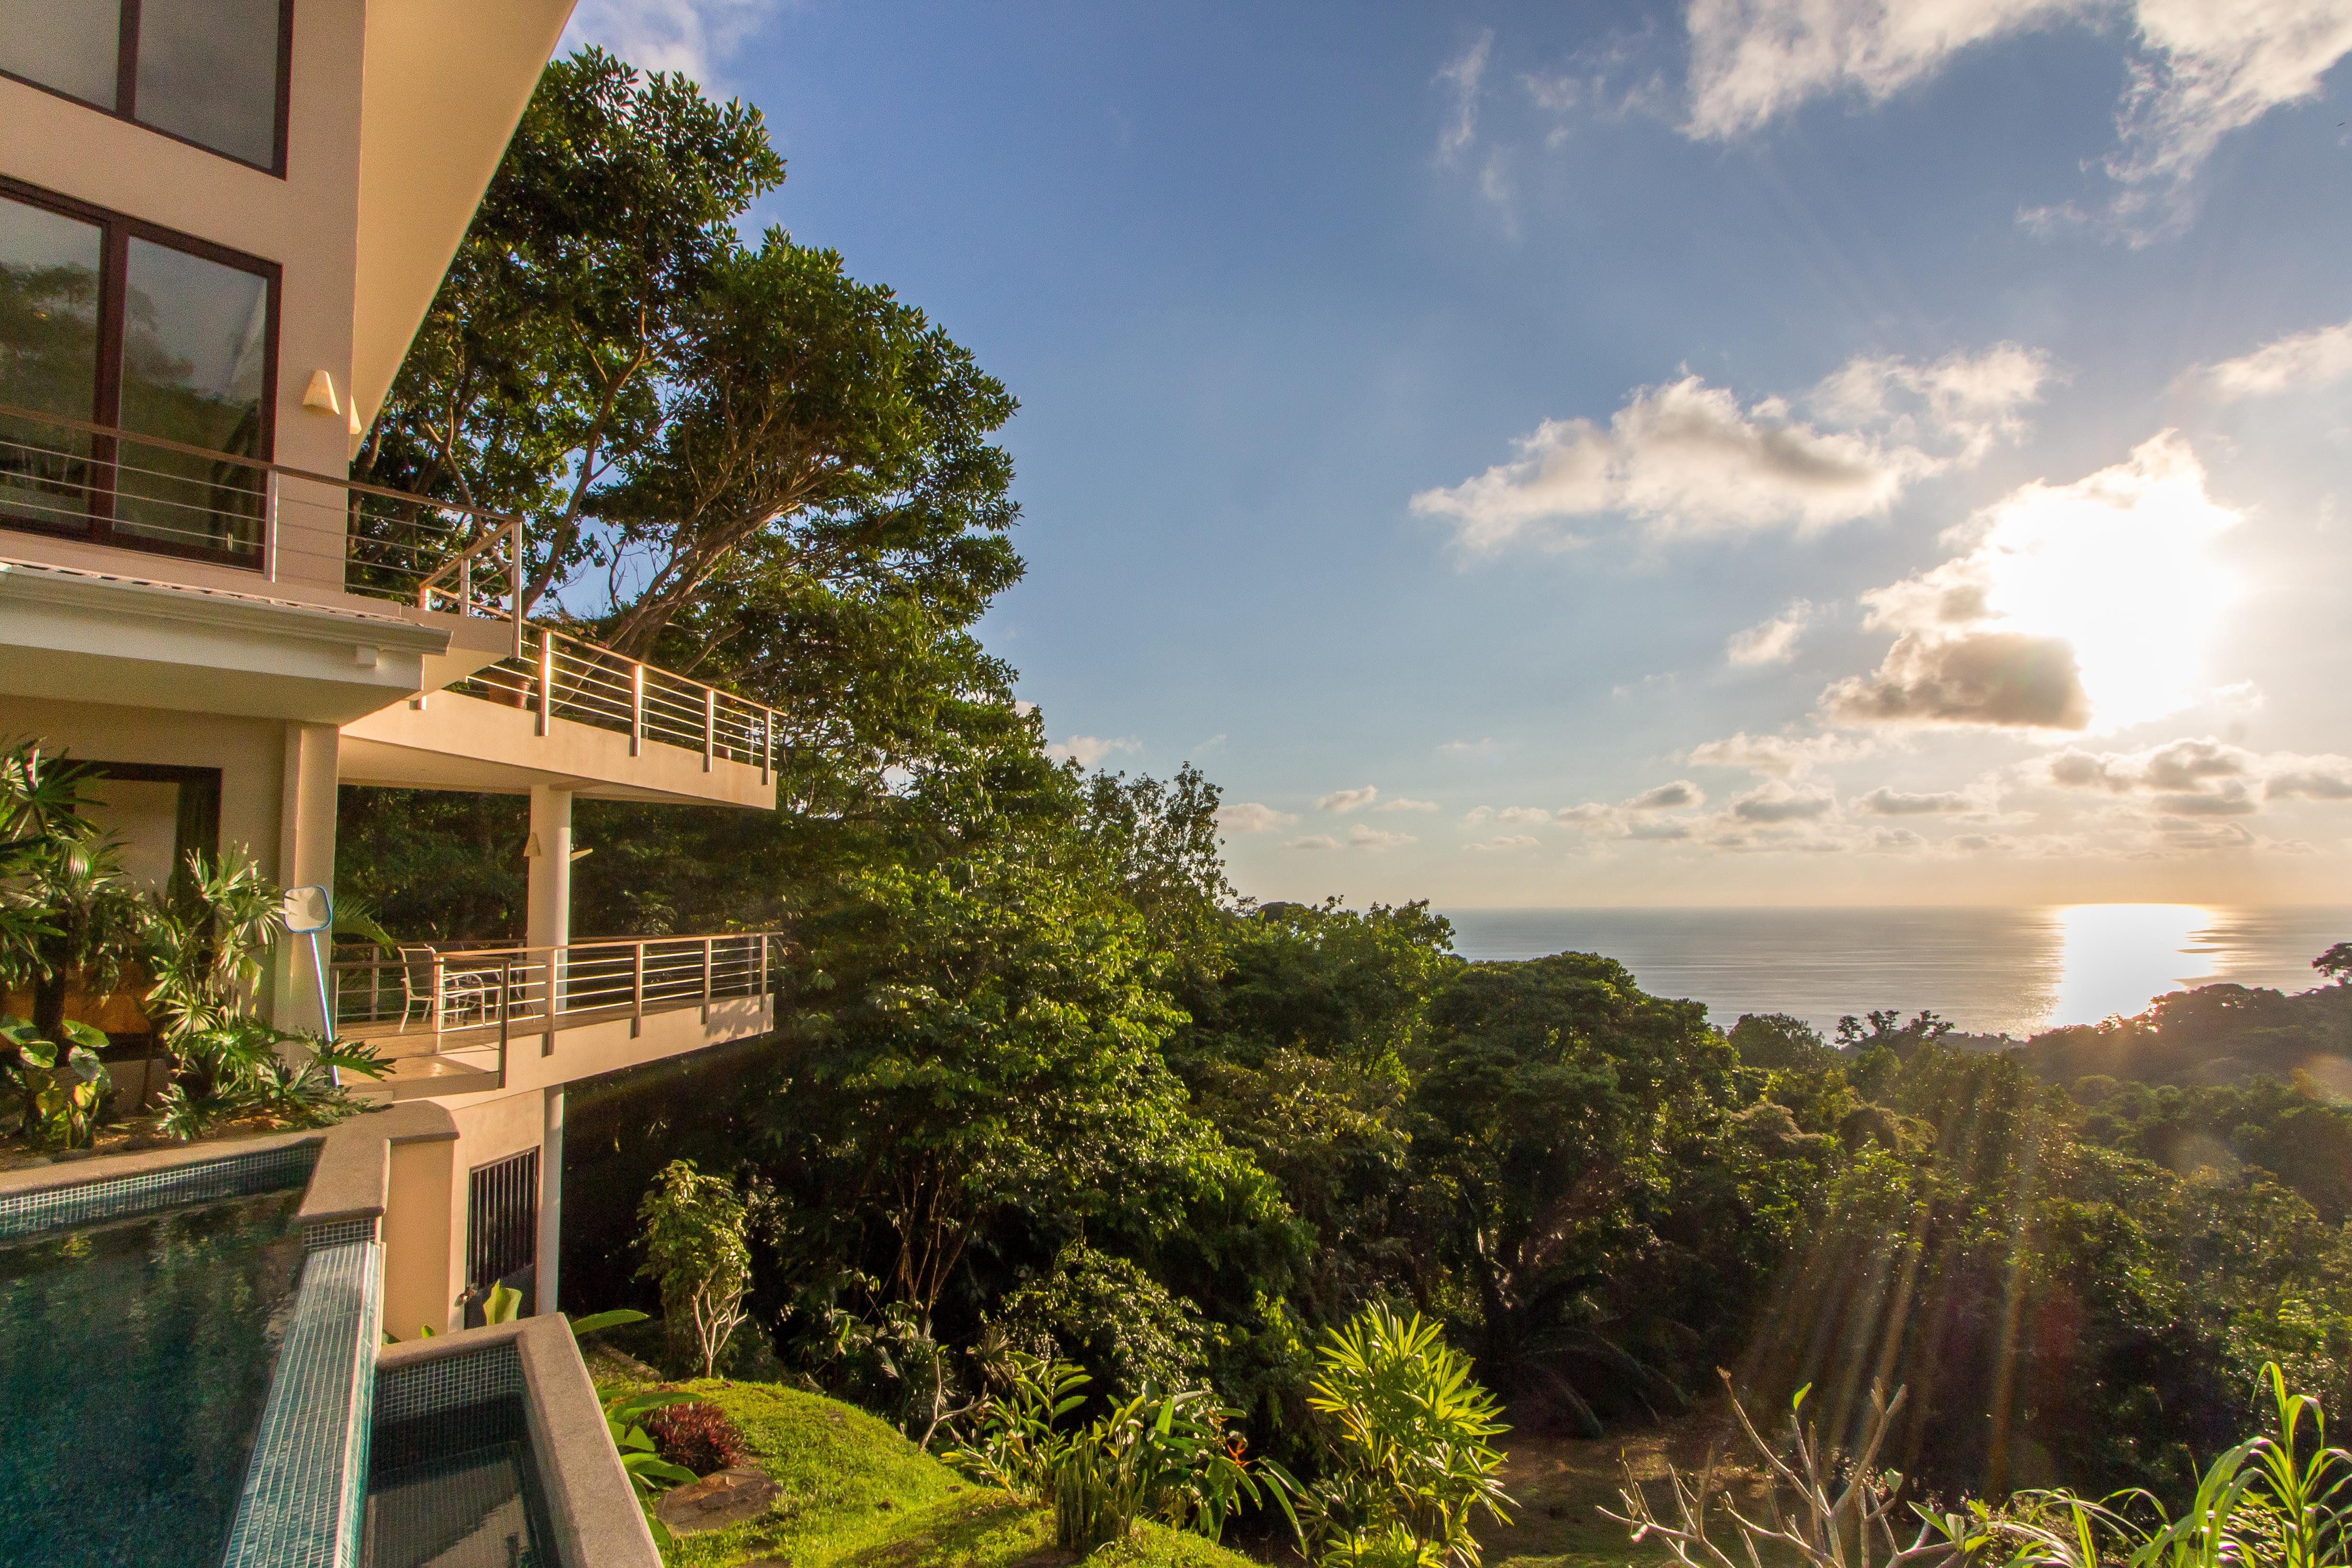 2.4 ACRES - 3 Bedroom Luxury Ocean View Home With Pool Located In Escaleras!!!!